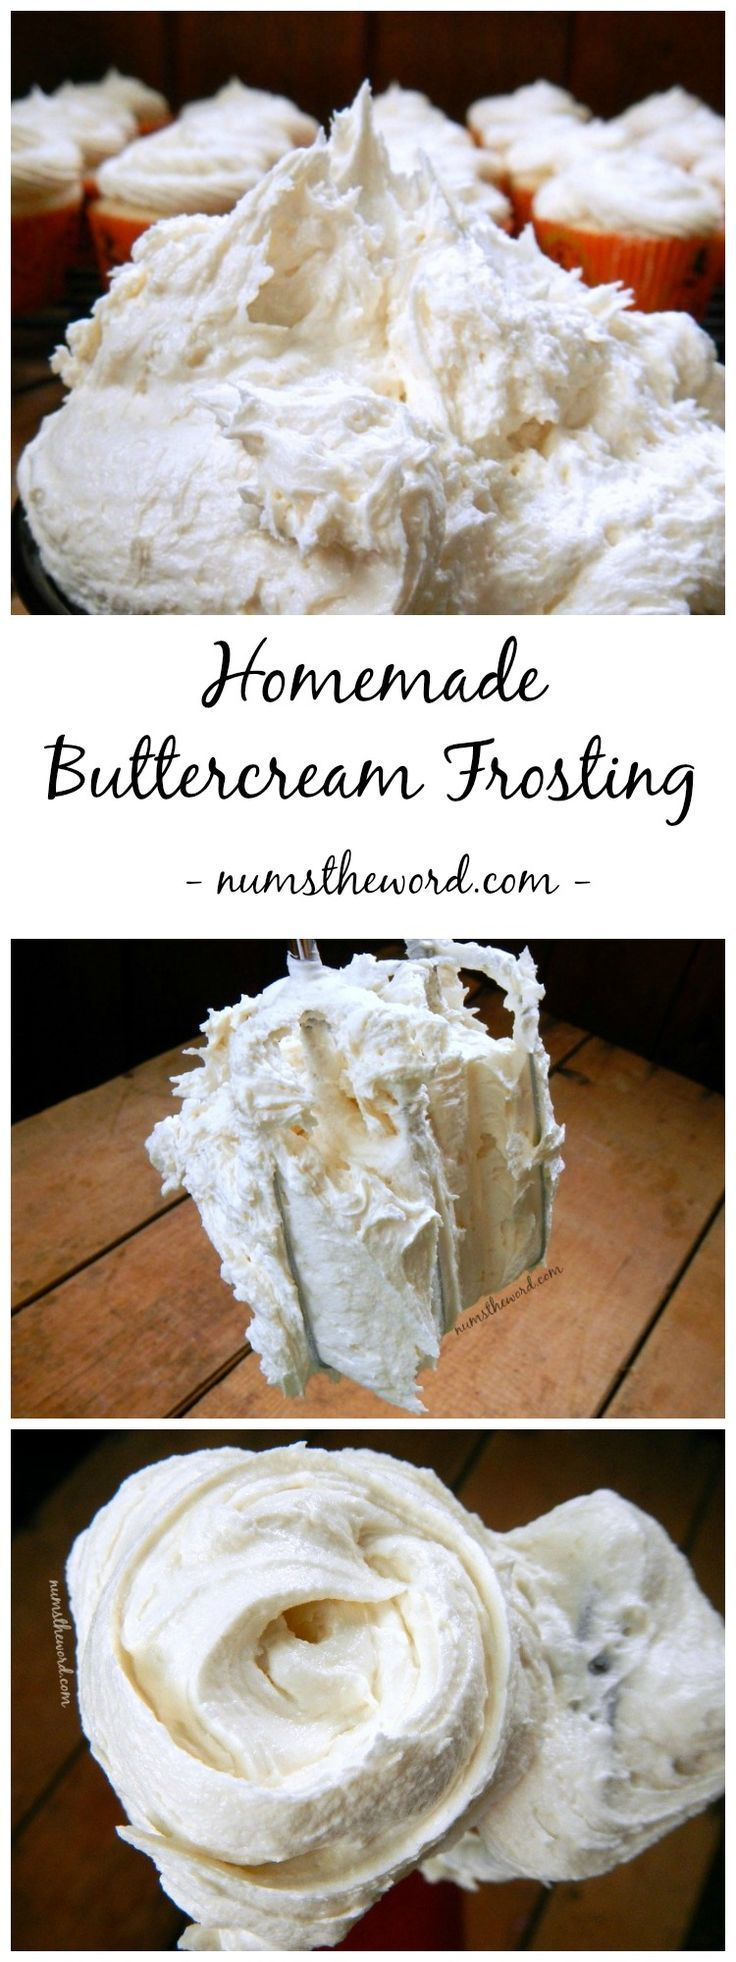 *VIDEO* This 5 minute Homemade Buttercream Frosting is the best you'll ever try! Rave reviews by everyone who has made it on how absolutely delicious it is! This will become your go to recipe guaranteed! This 5 minute Homemade Buttercream Frosting is the best you'll ever try! Rave reviews by everyone who has made it on how absolutely delicious it is! This will become your go to recipe guaranteed!